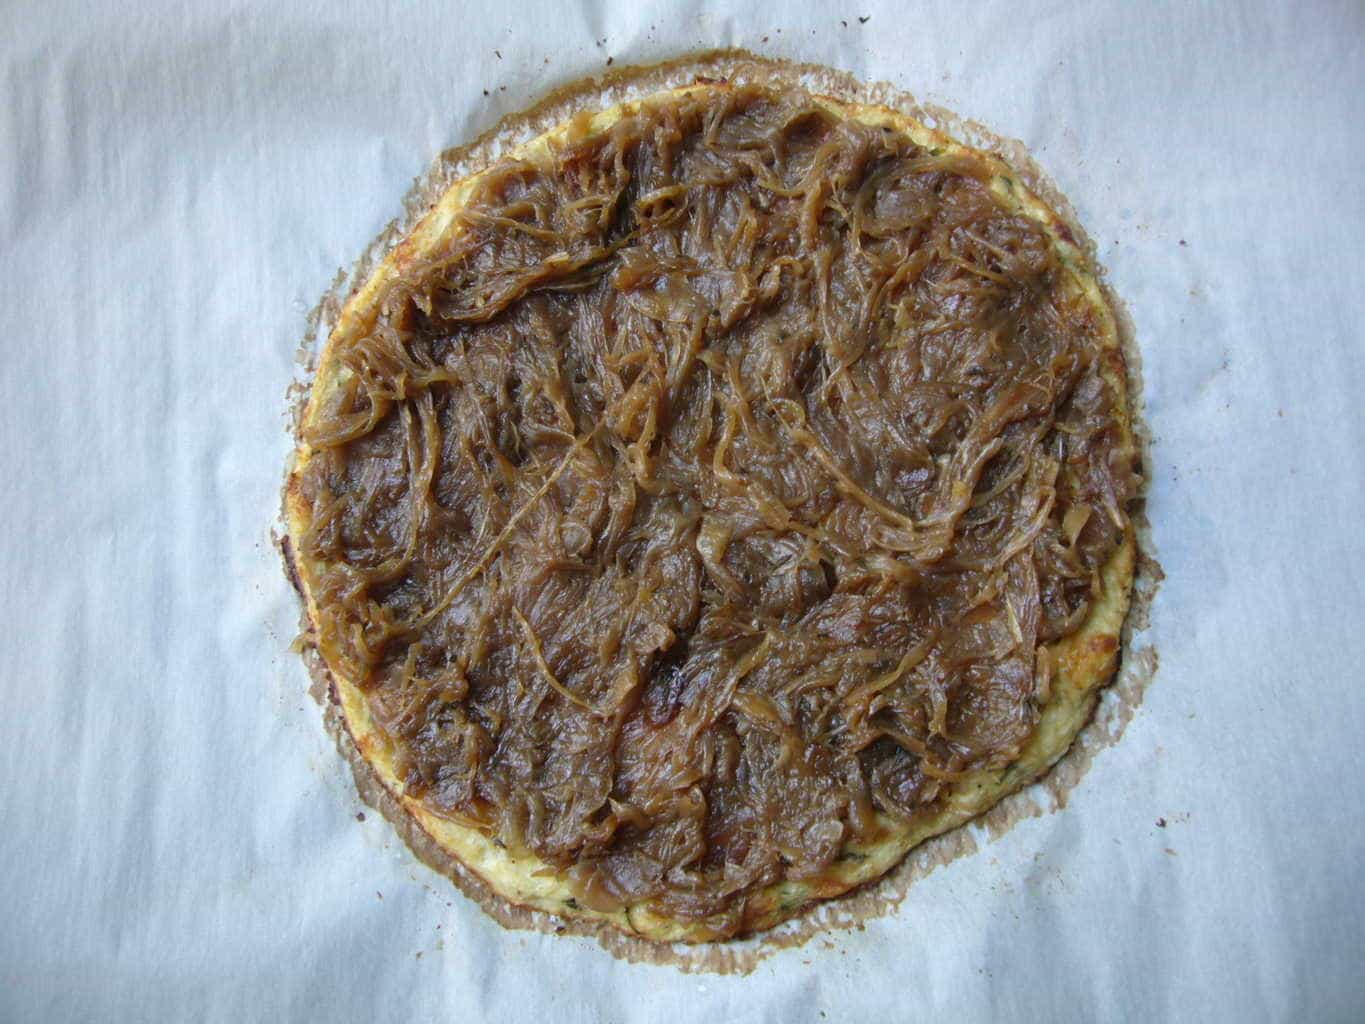 French onion sauce spread on the cauliflower crust for Low Carb French Onion Pizza